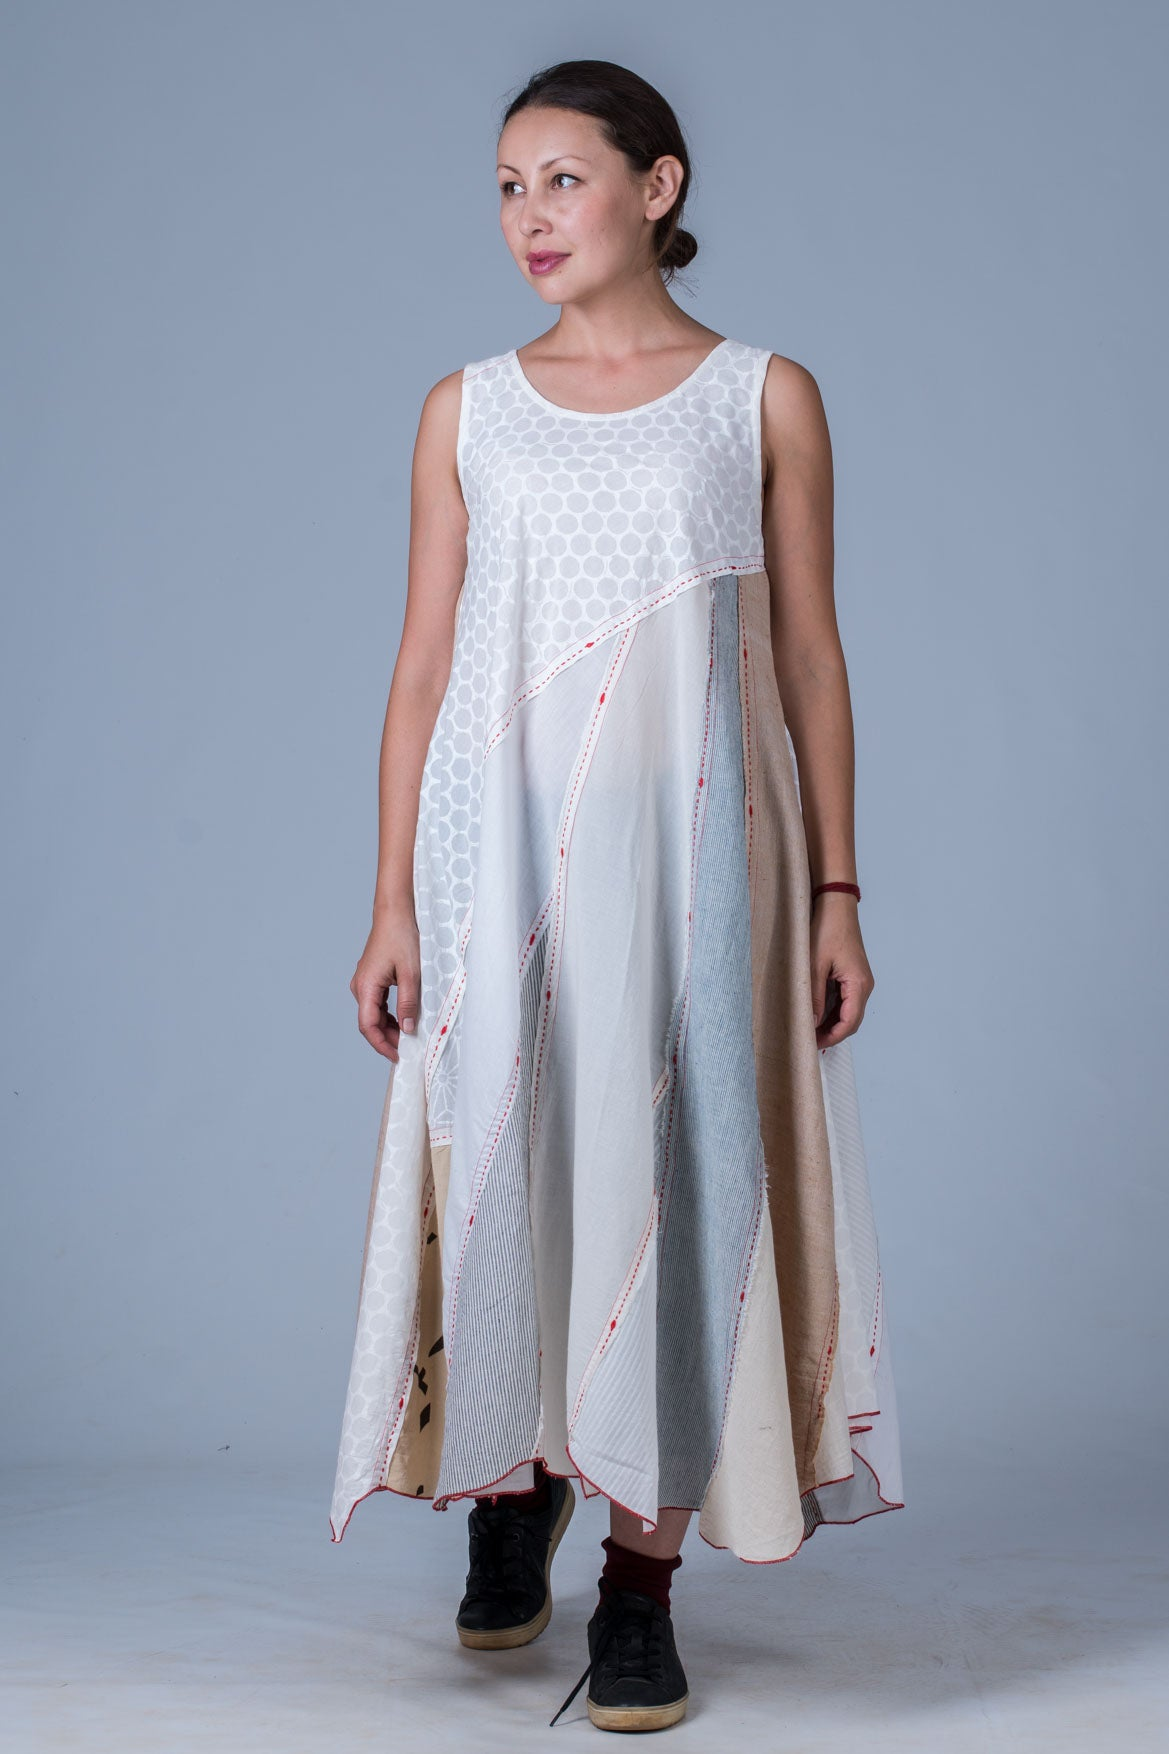 Off White Upcycled Dress - NAISHA - Upasana Design Studio